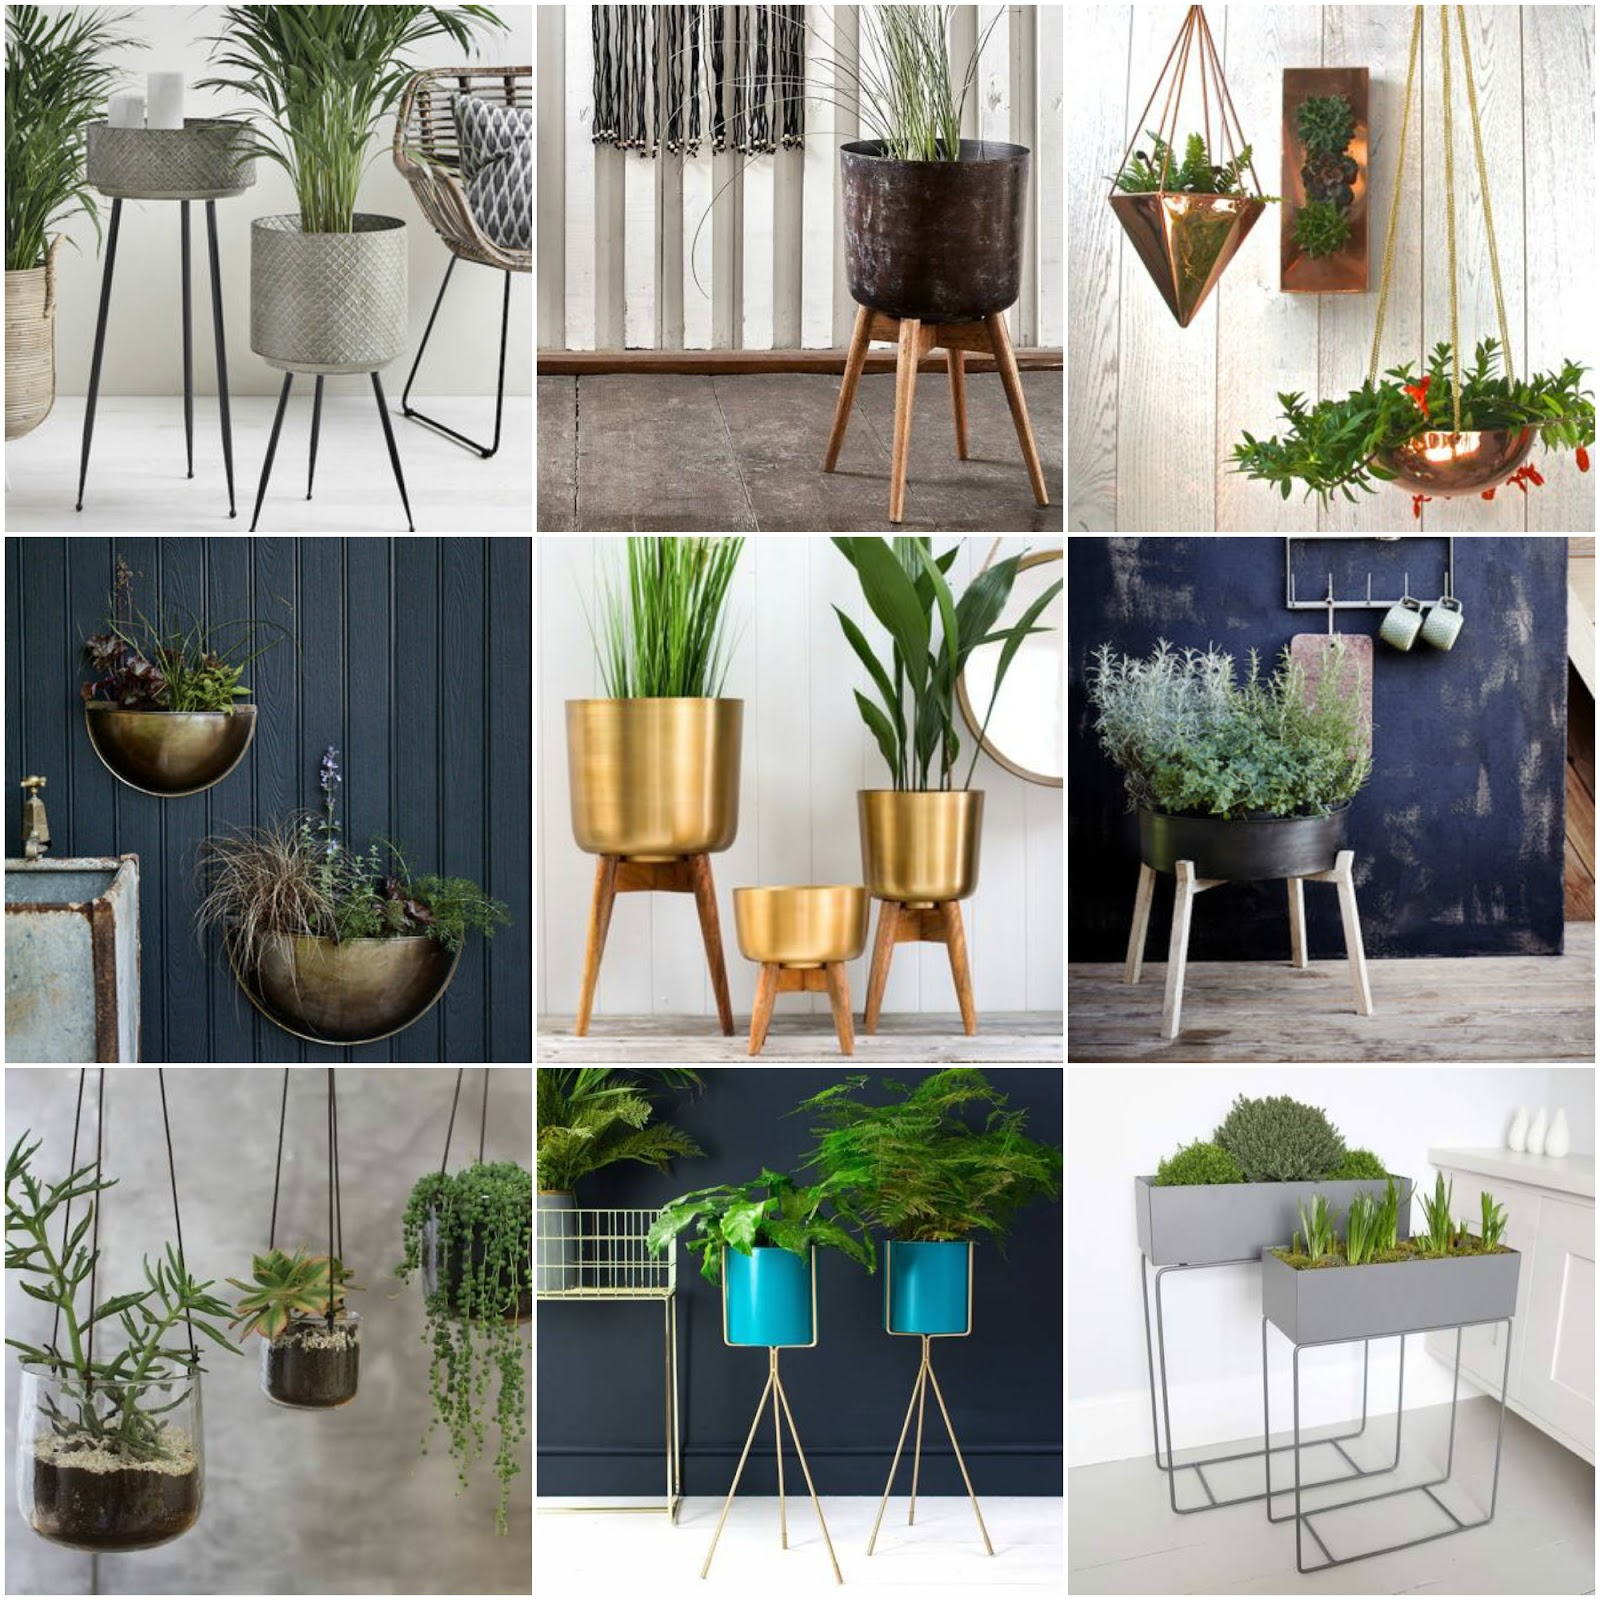 Wafflemama.: Home Style || Obsessed With Planters? on traditional garden planters, natural garden planters, unique recycled garden planters, decorative garden planters, contemporary garden planters, textured garden planters, chair planters, outdoor garden planters,